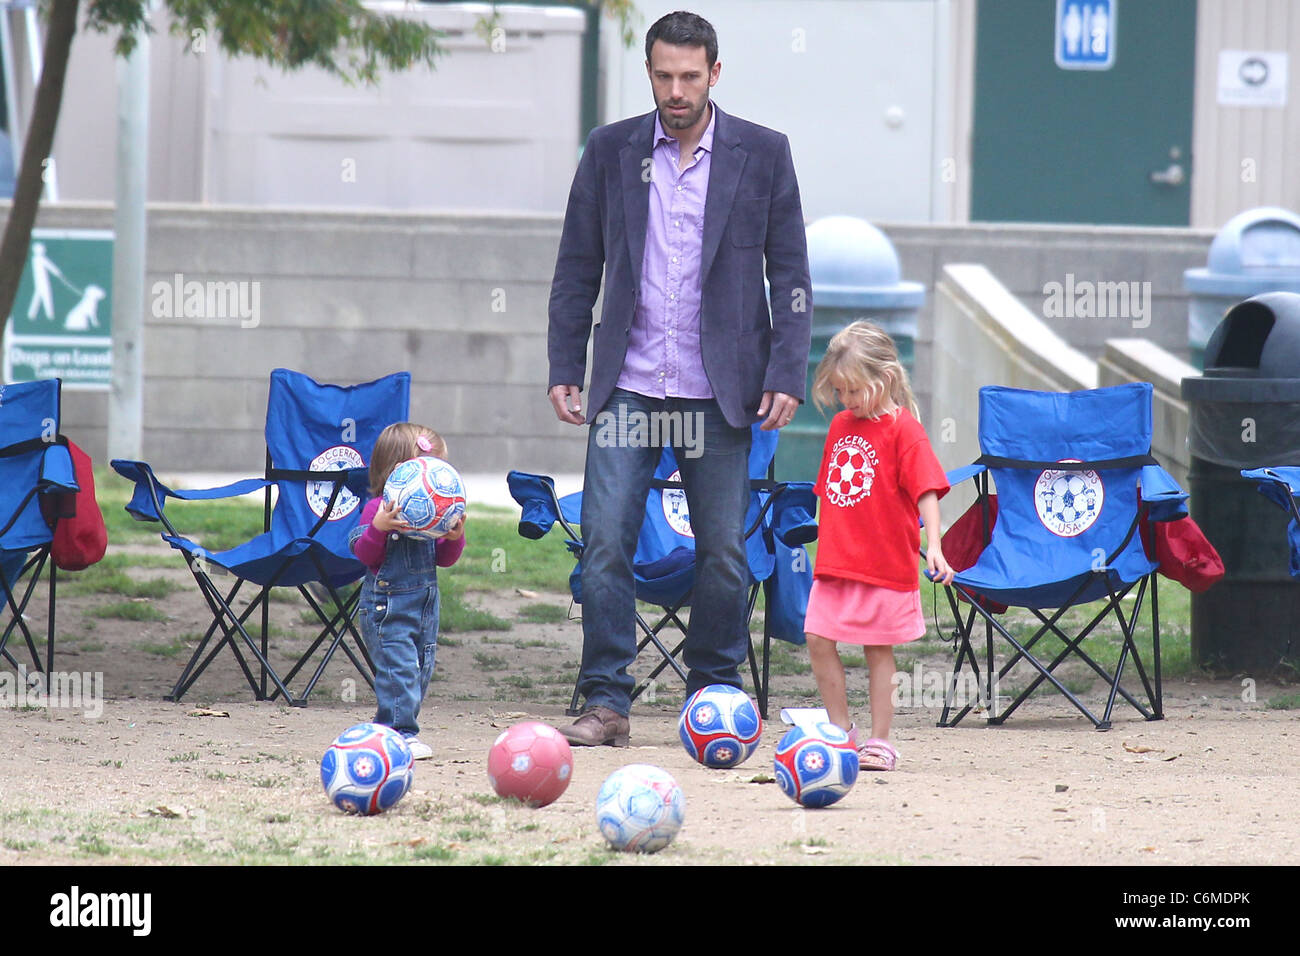 Ben Affleck watches his daughters playing soccer at a Park in Santa Monica Santa Monica, USA - 31.07.10 - Stock Image